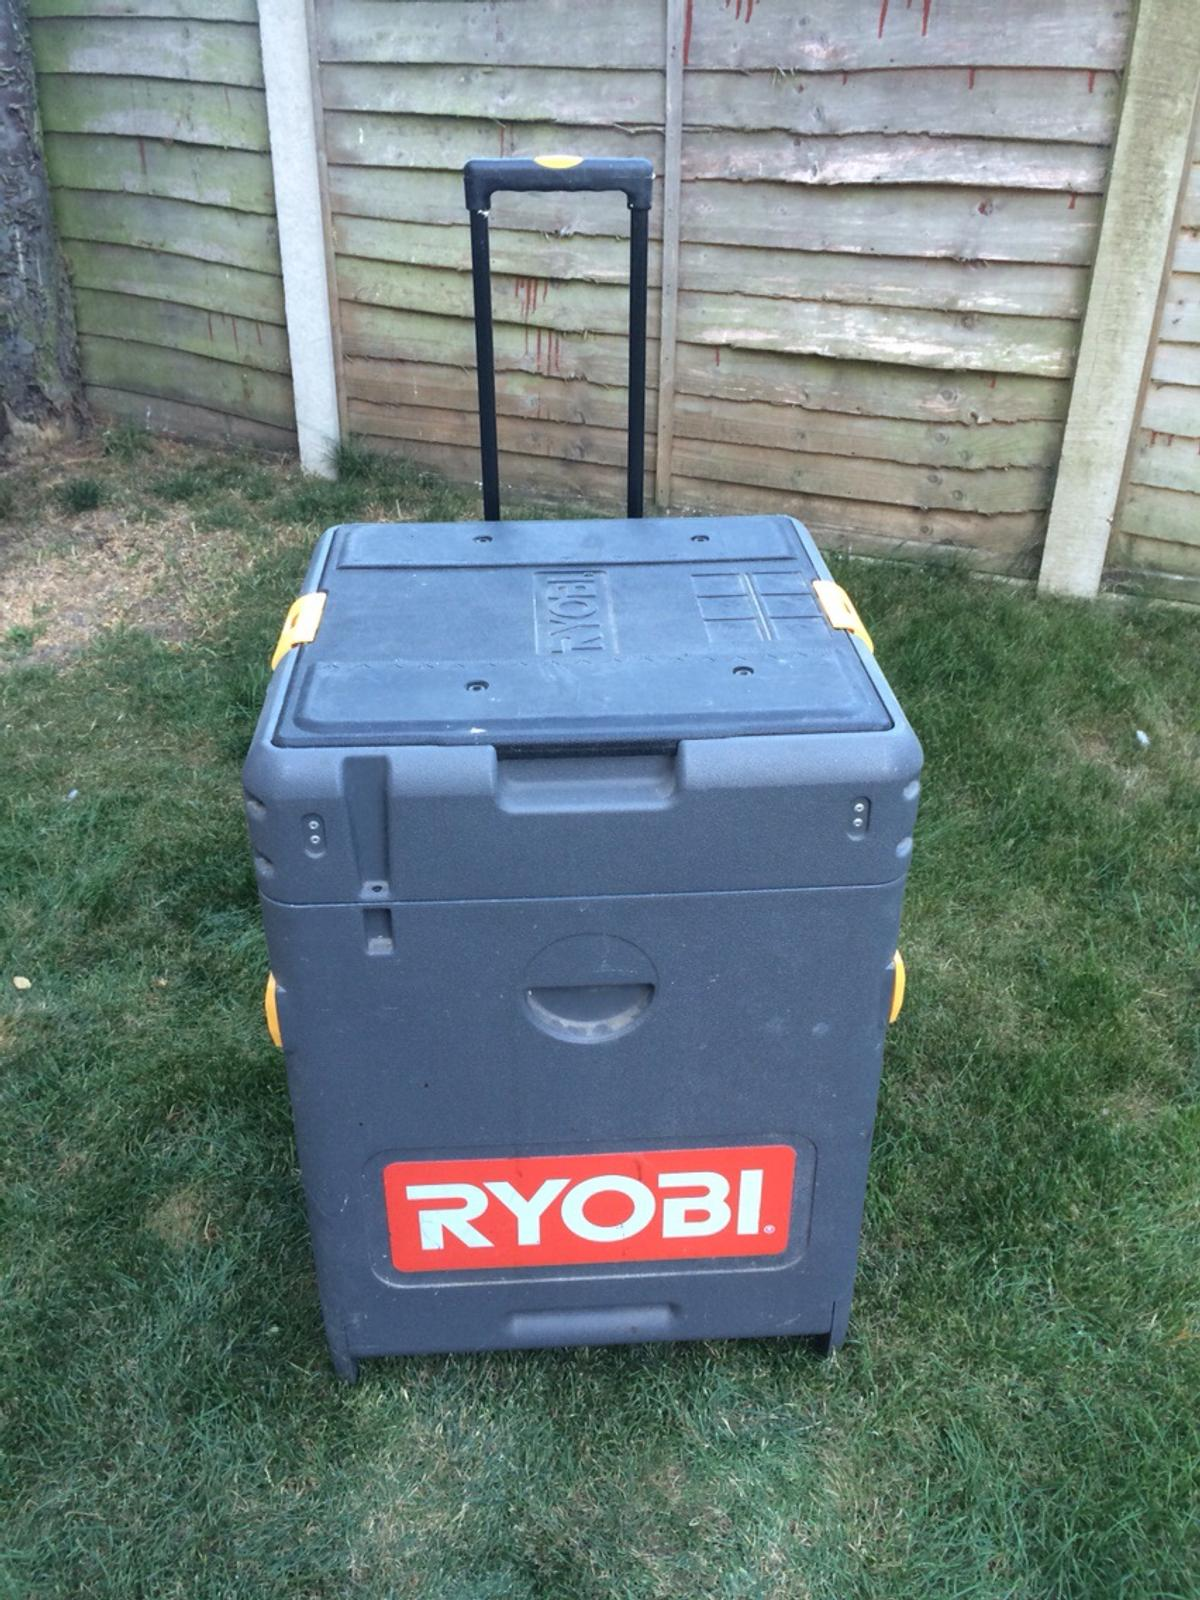 Ryobi tool storage travel box in CT14 Deal for £30 00 for sale - Shpock